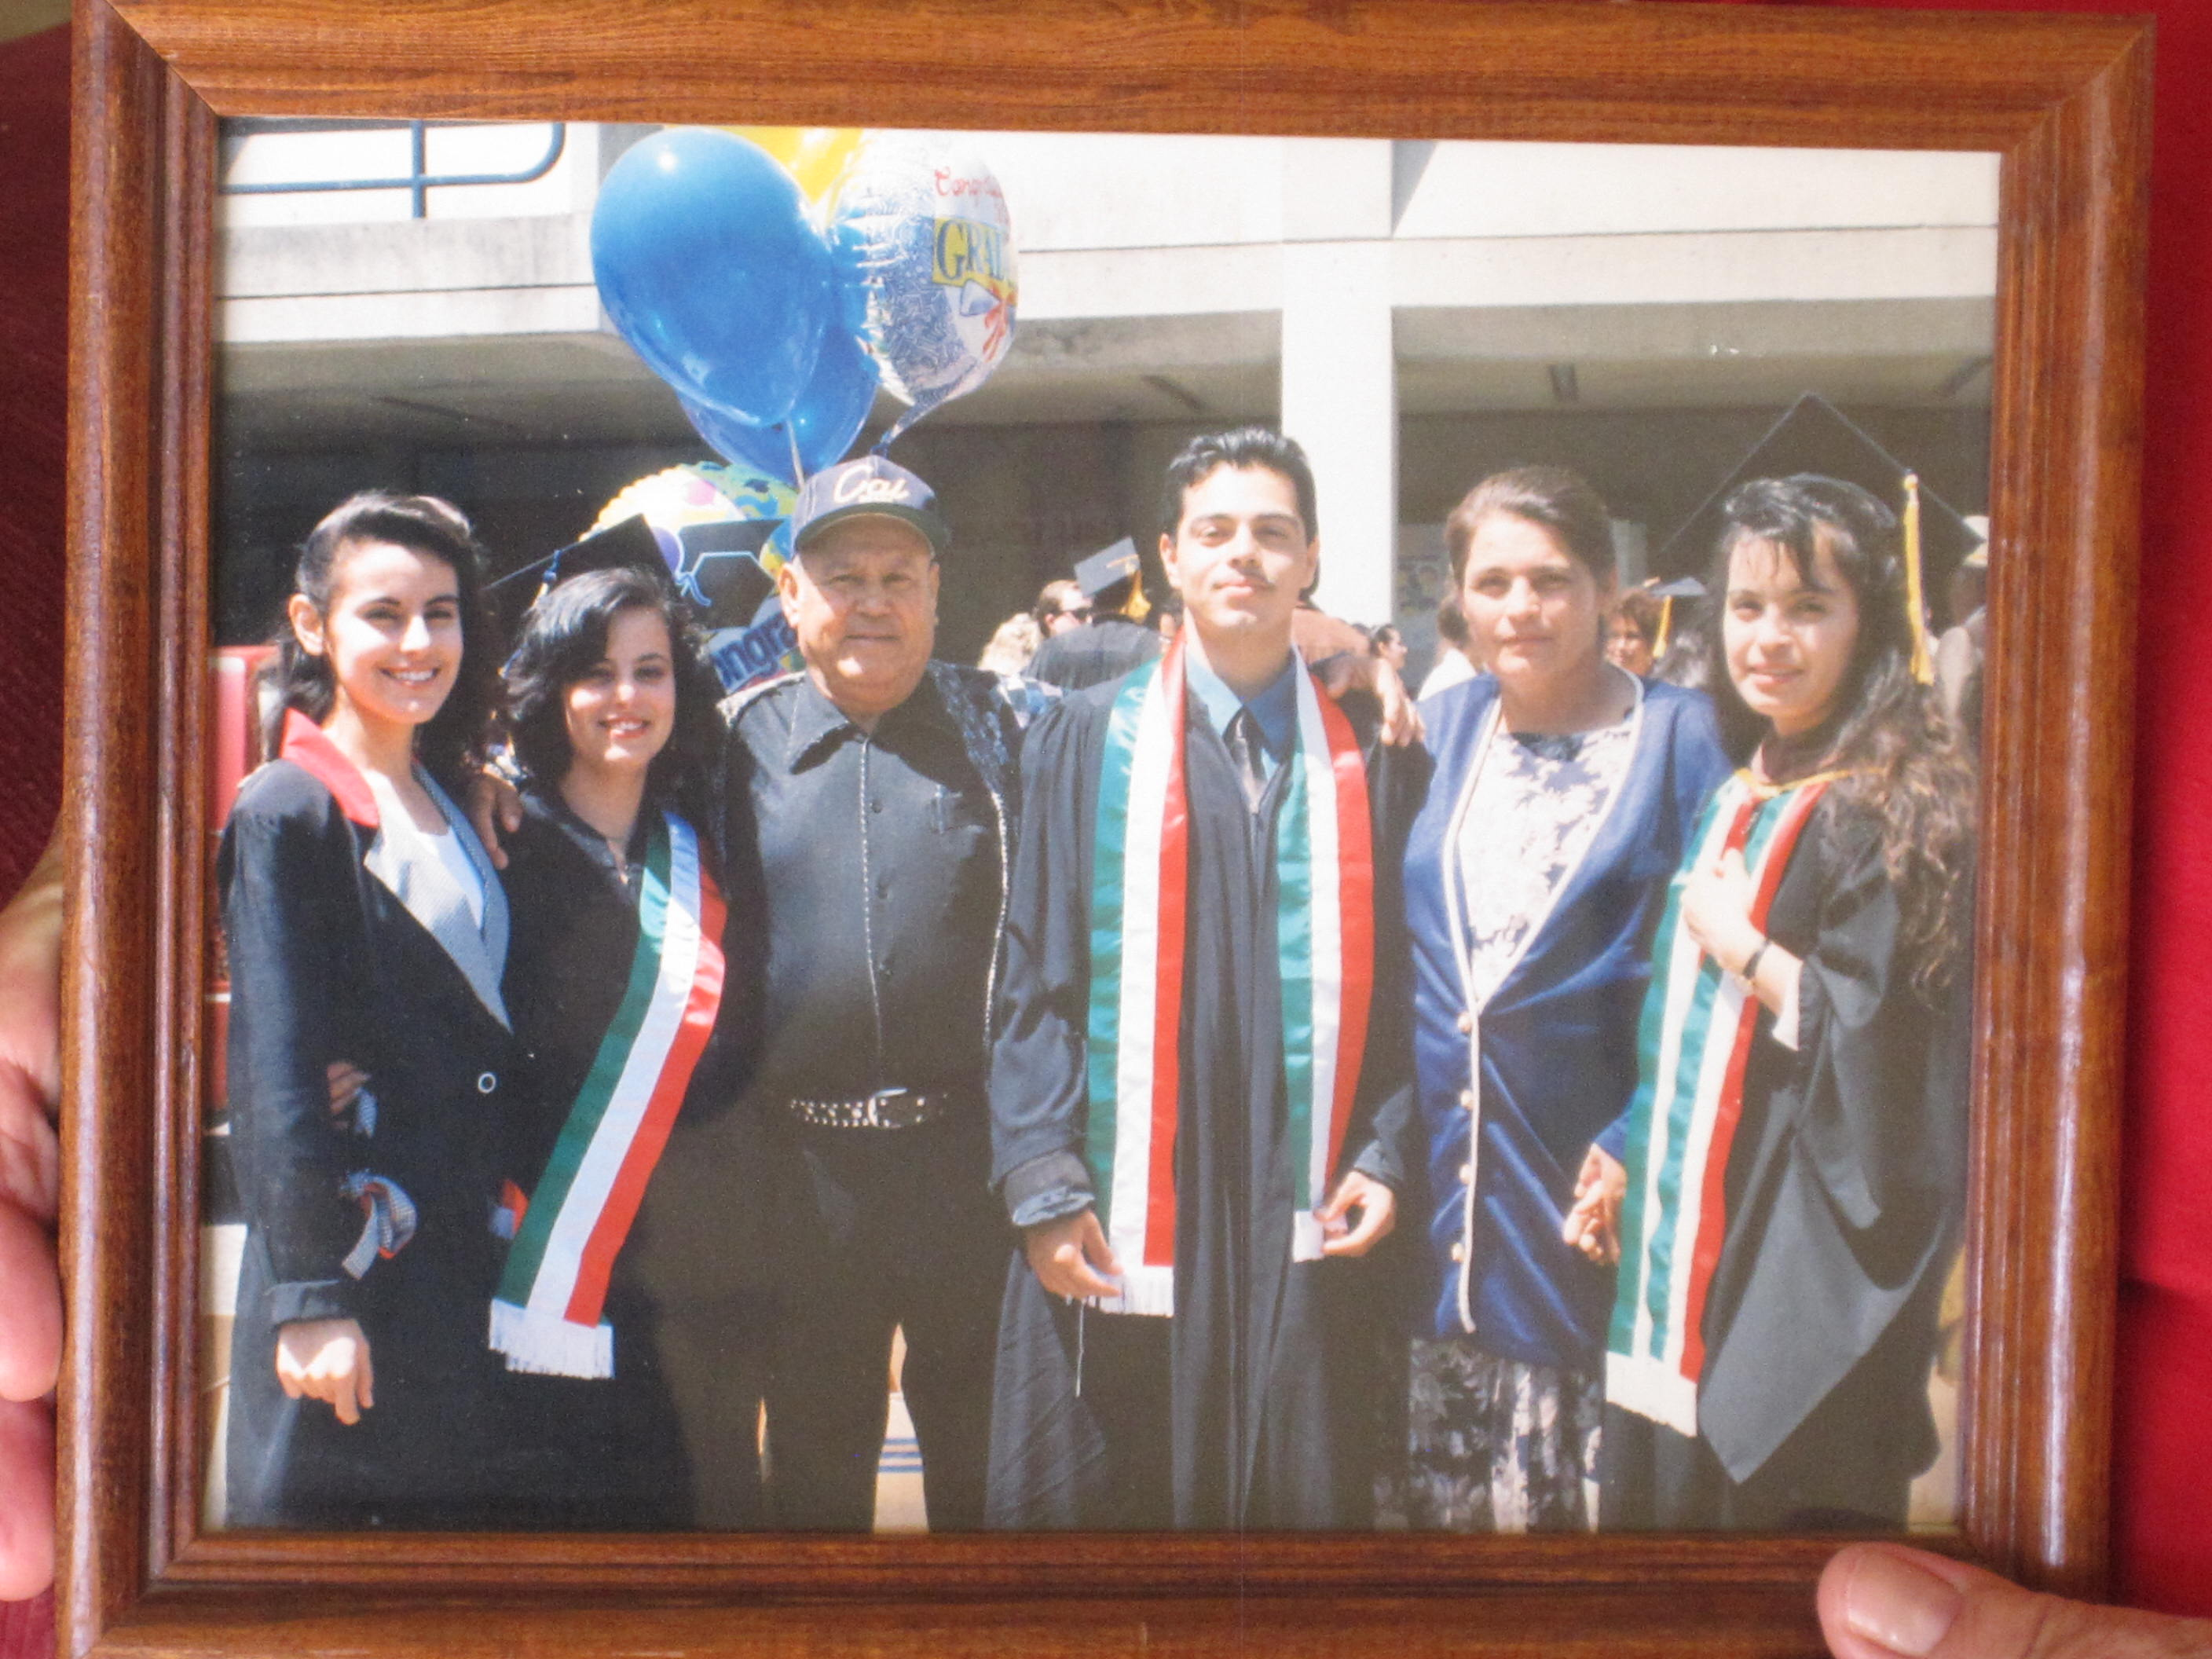 Caption: Maria and Fabian Ramirez graduated from UC Berkeley on the same day that their older sister Gloria received her master's degree. From left: Angela, Maria, father Filemon, Fabian, mother Lucila, and Gloria. , Credit: Zaidee Stavely / Radio Bilingüe